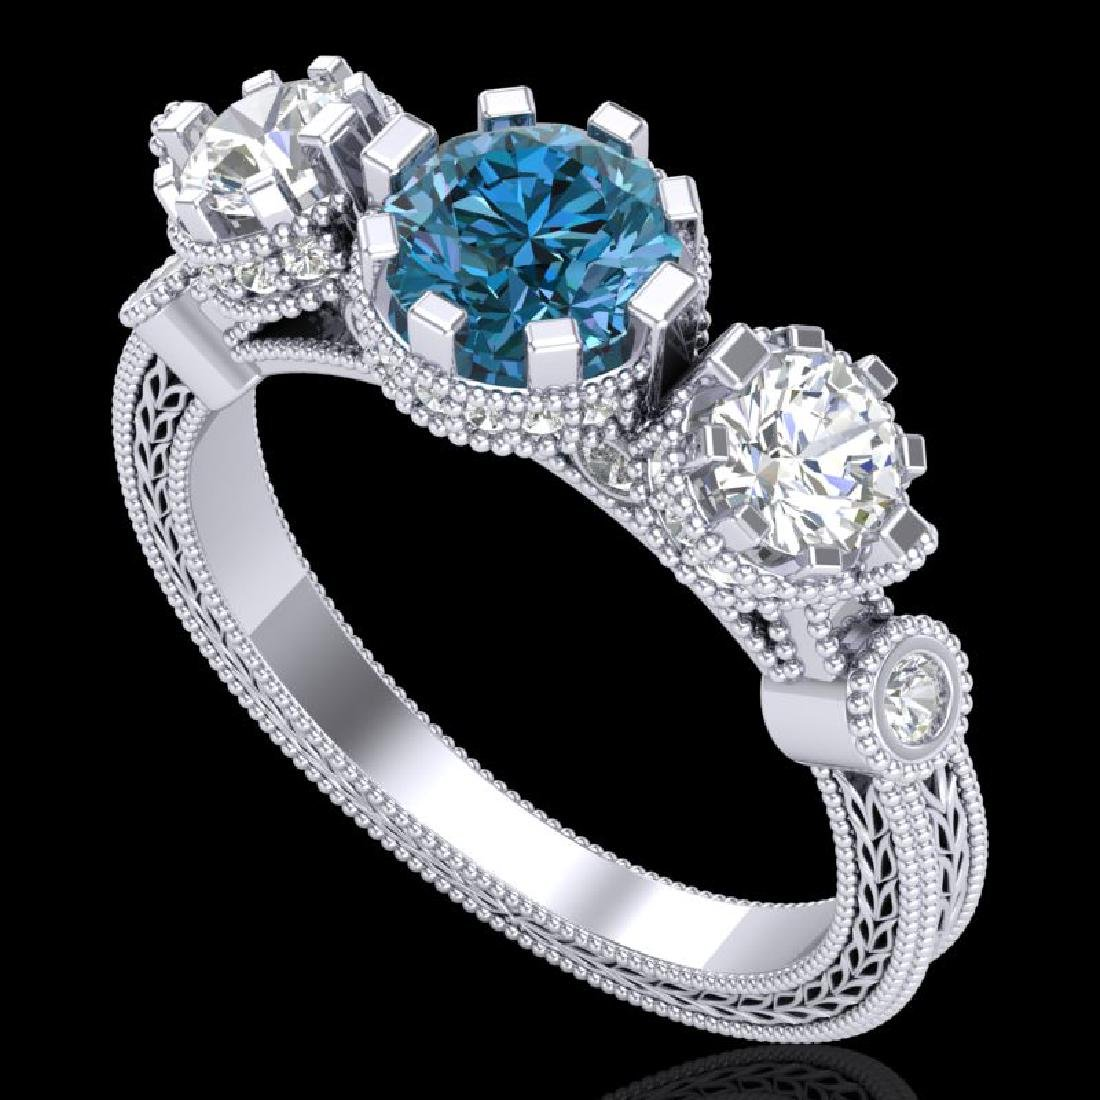 1.75 CTW Intense Blue Diamond Solitaire Art Deco 3